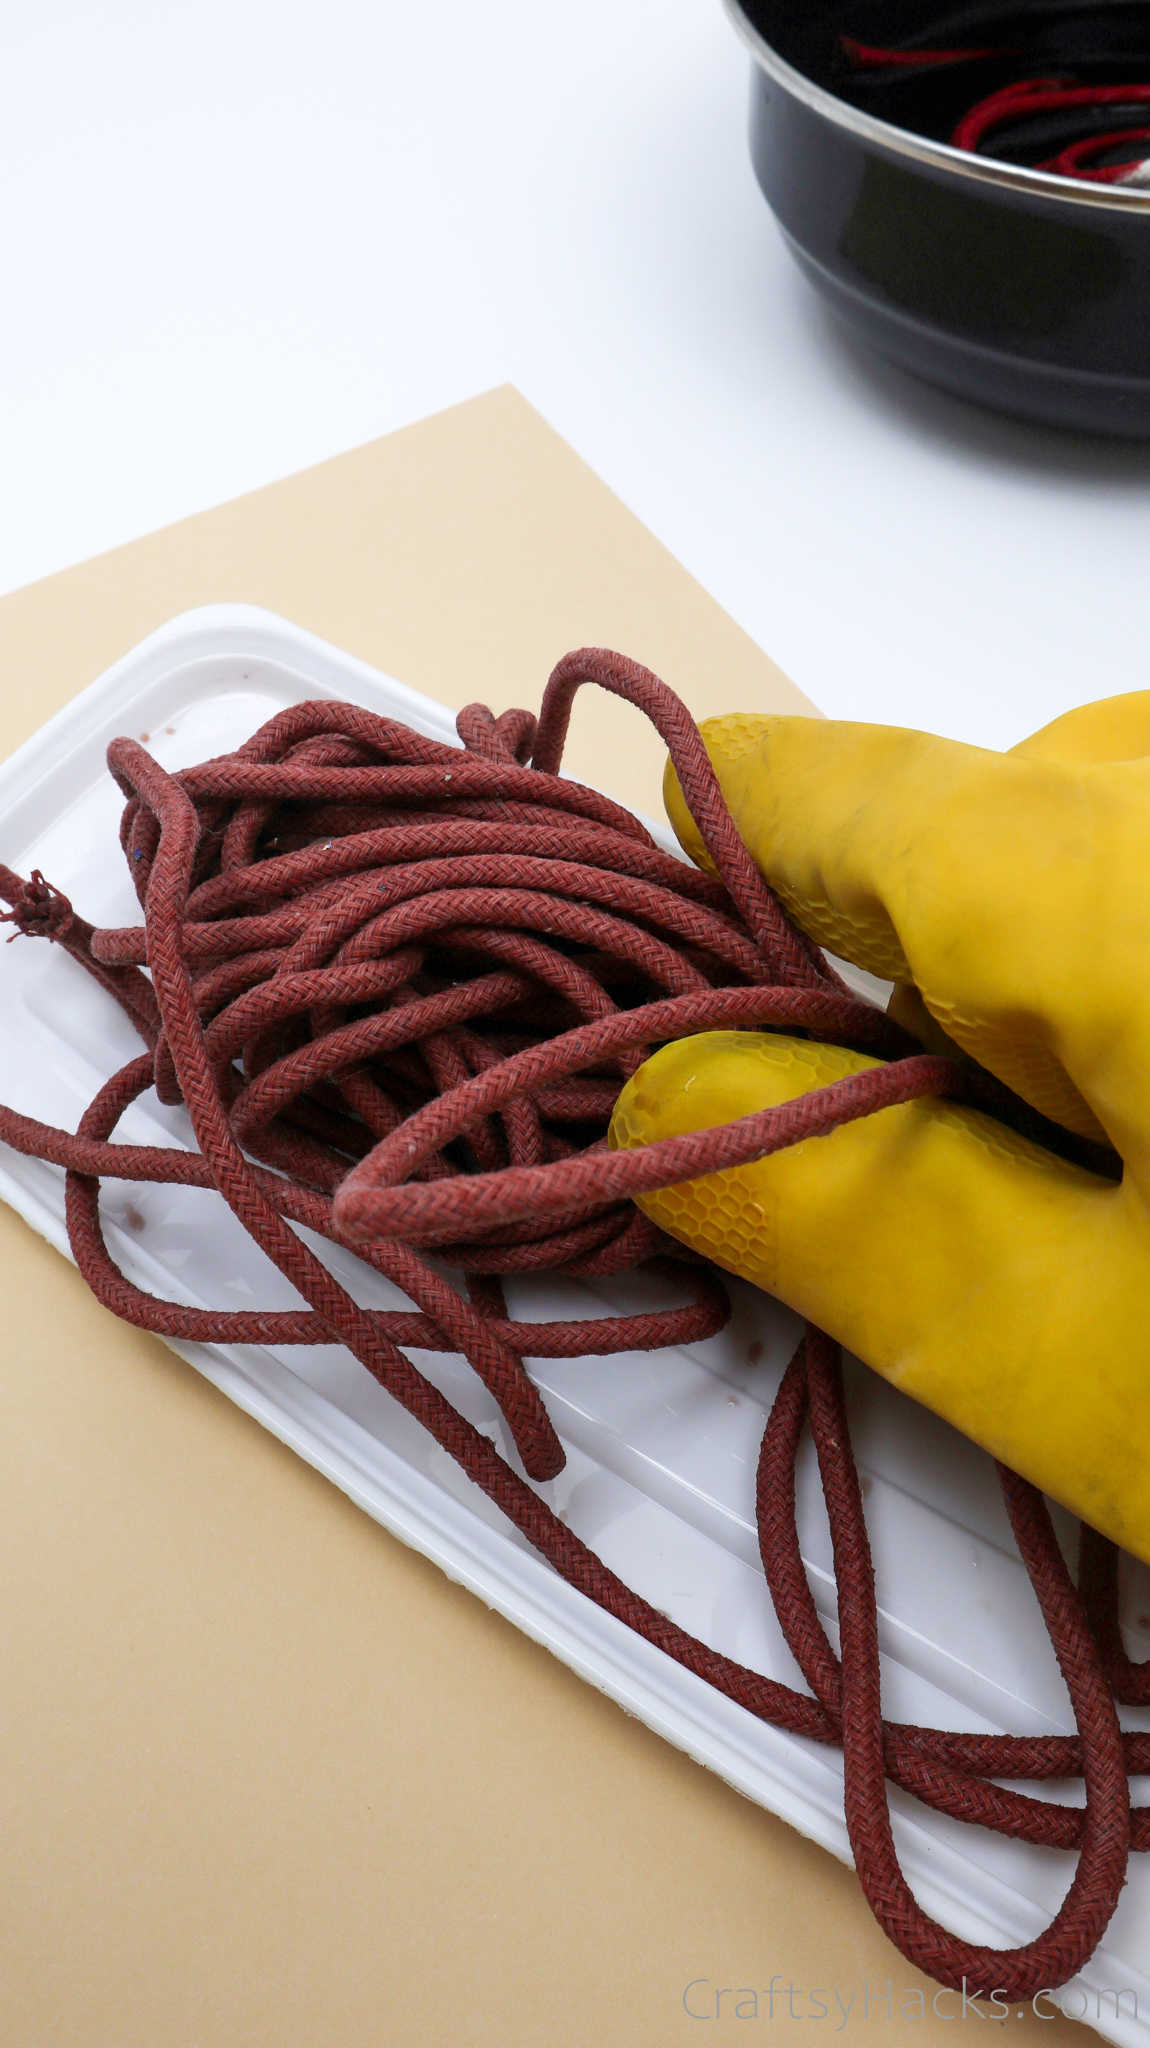 holding red dyed rope with glove